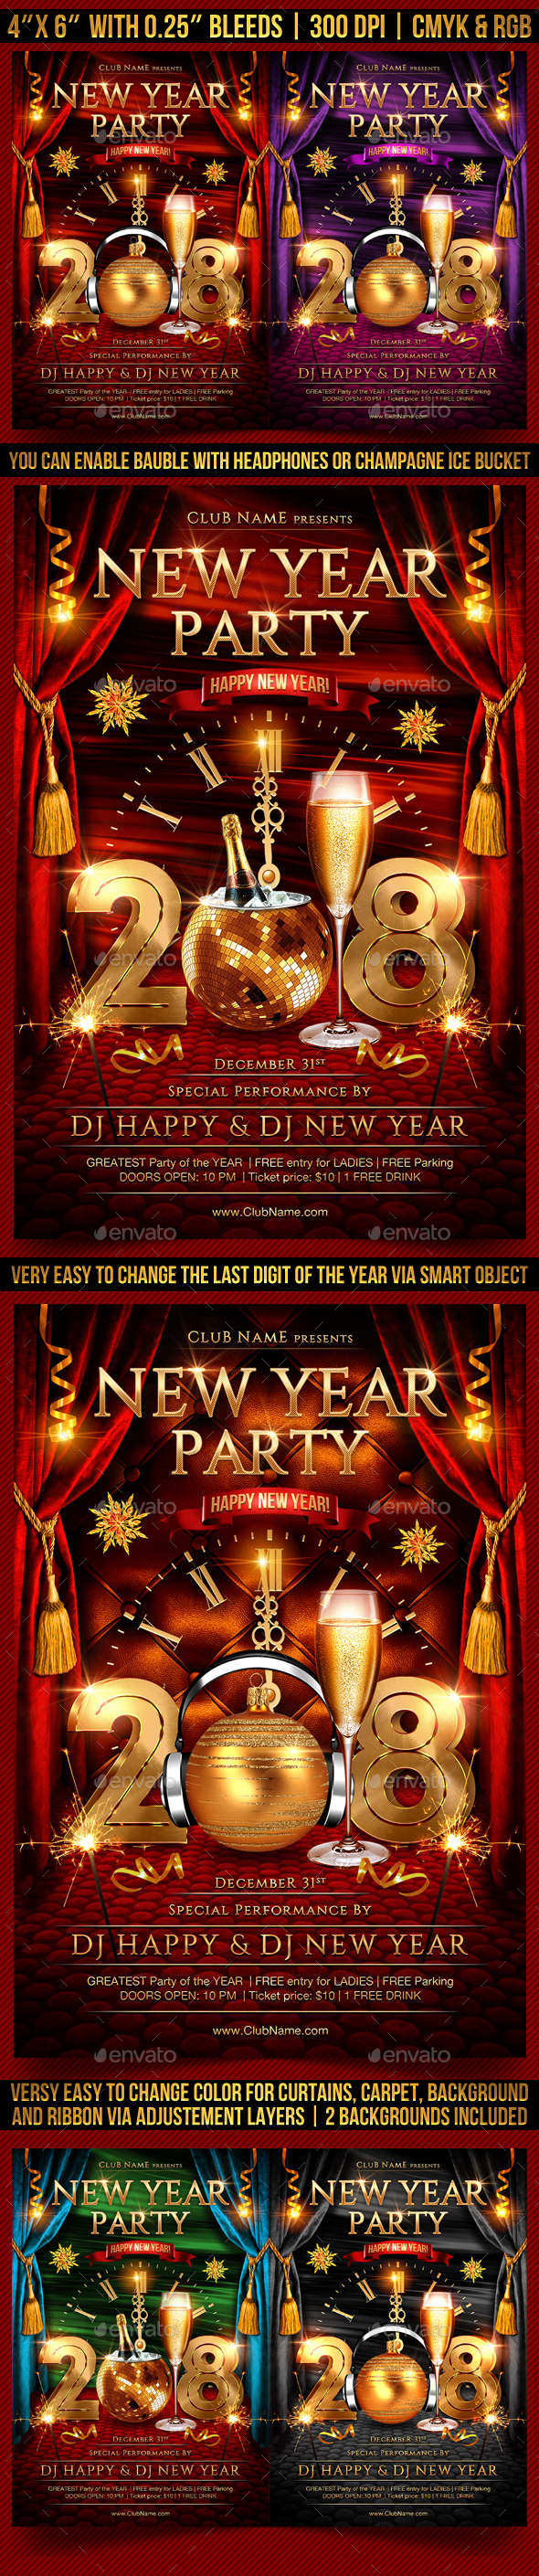 New Year Party Flyer Template - Clubs & Parties Events